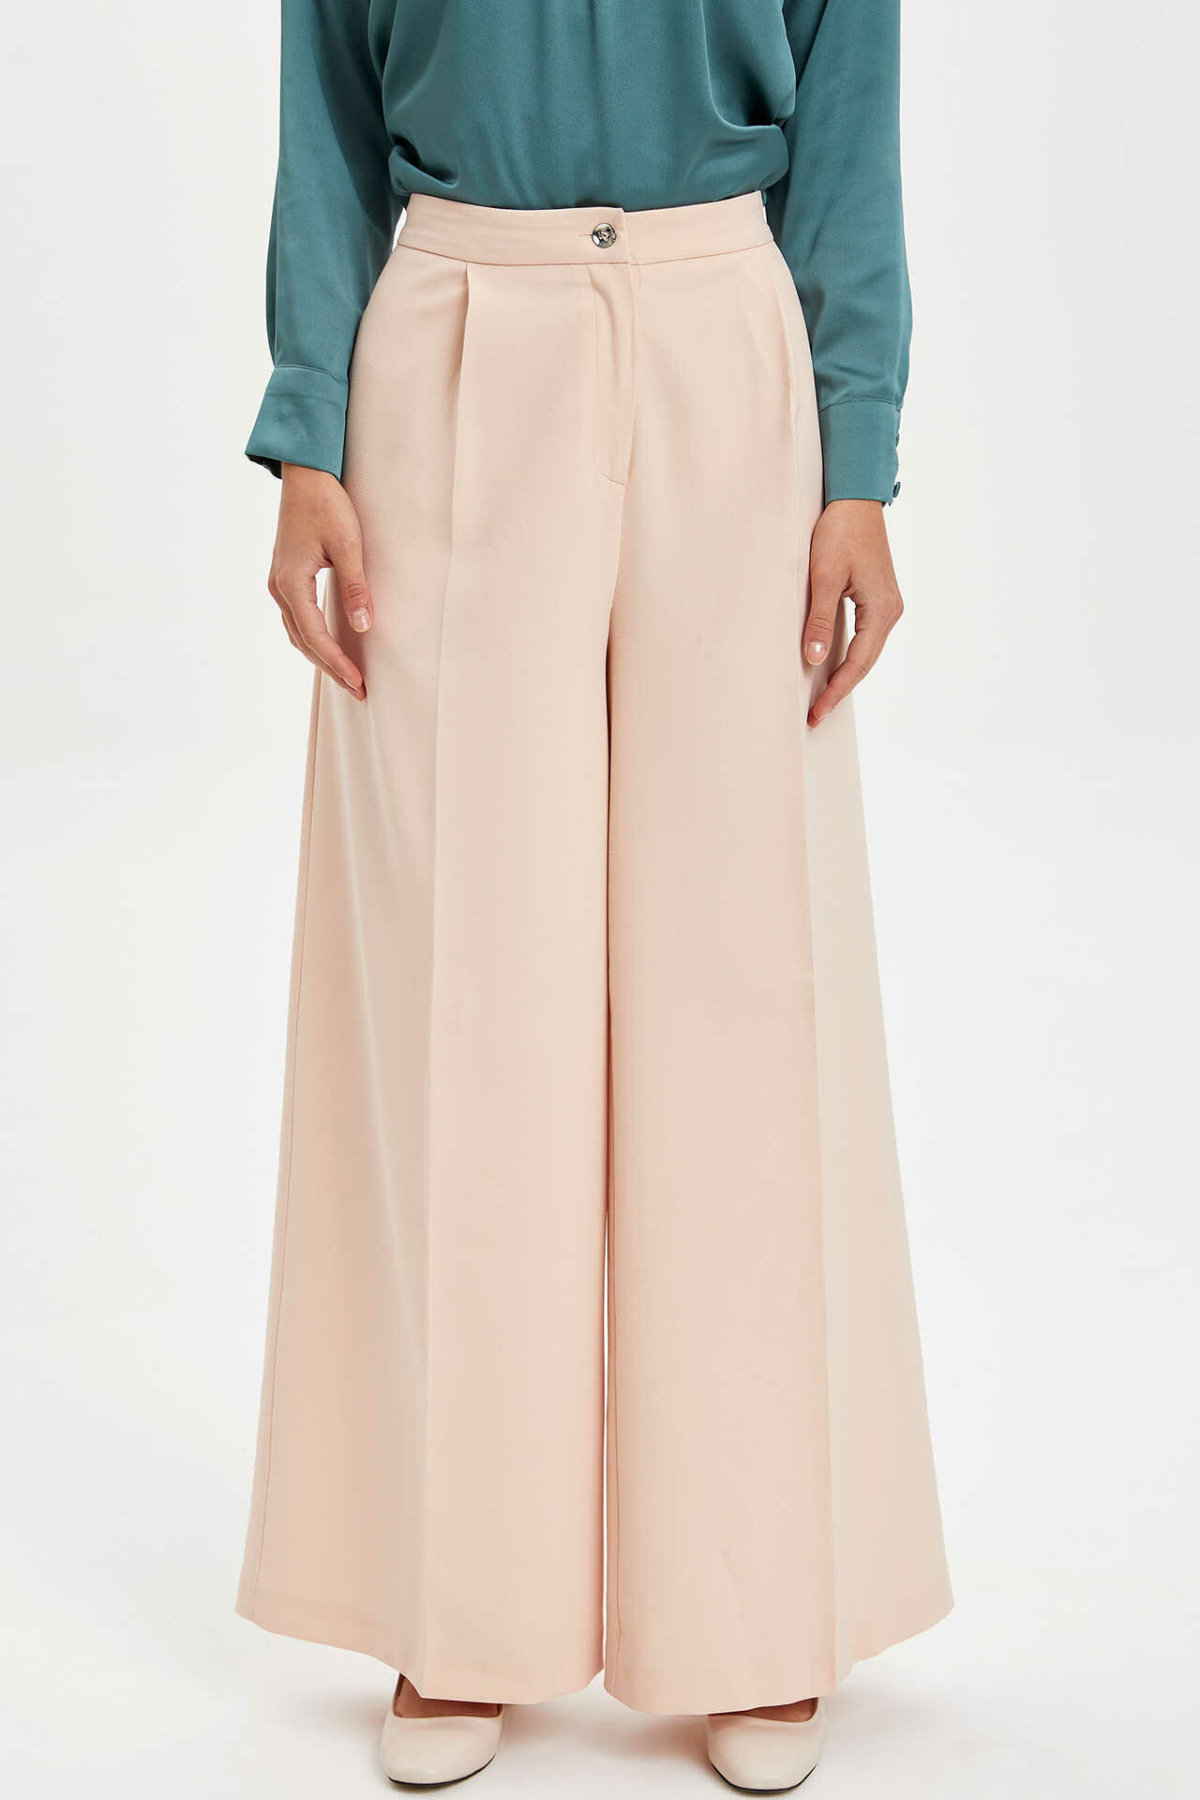 DeFacto Fashion Woman Trousers Casual Solid Straight Loose Pants Mid Waist Leisure Breathable Long Pant Female - M3387AZ19AU